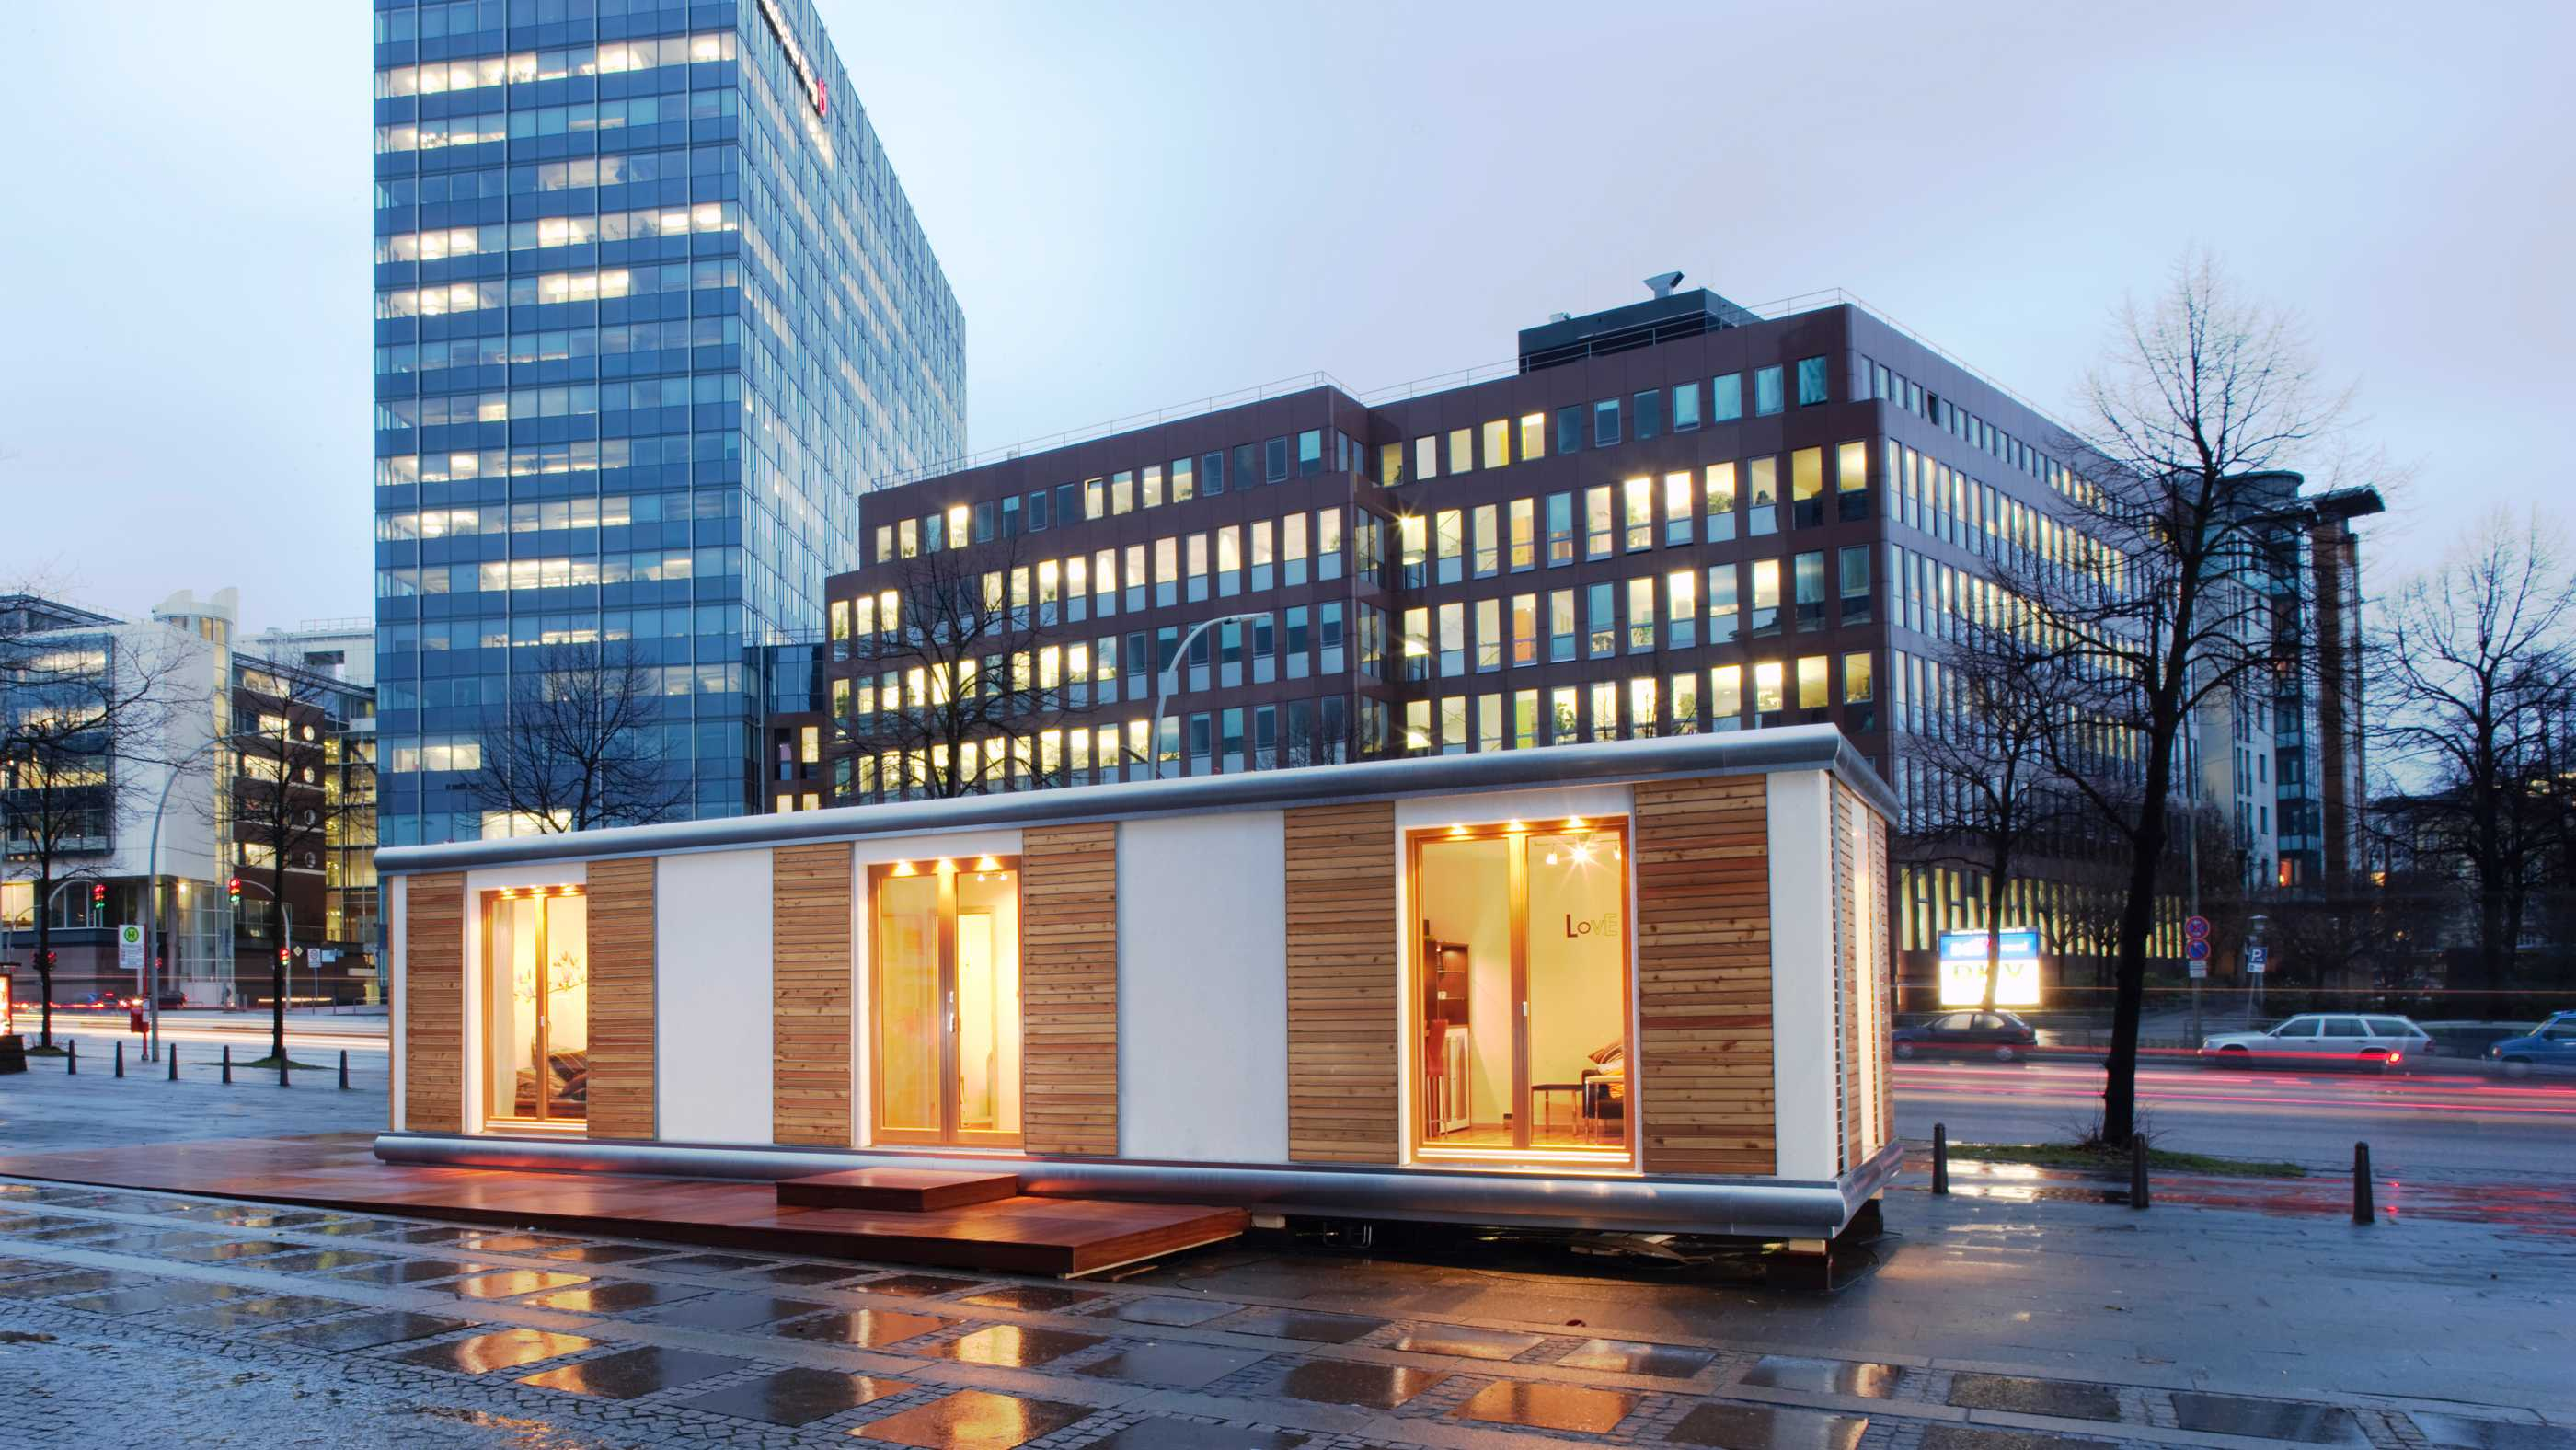 Tiny House in der Stadt